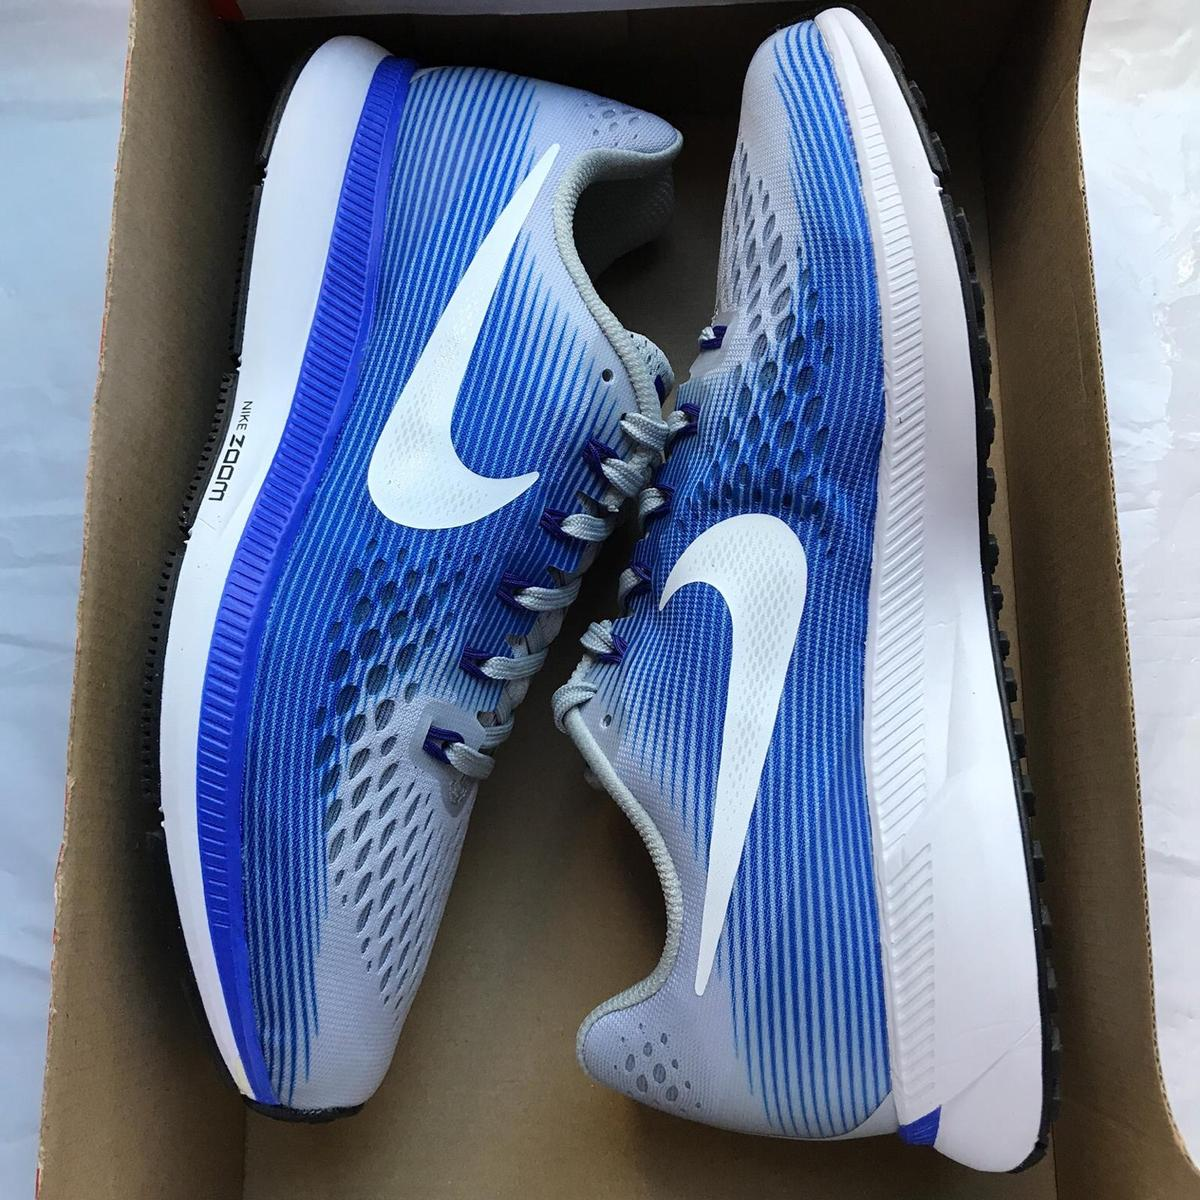 8aedb0428cc Nike Air Zoom Pegasus 34 UK Size 9 in N21 London for £55.00 for sale ...